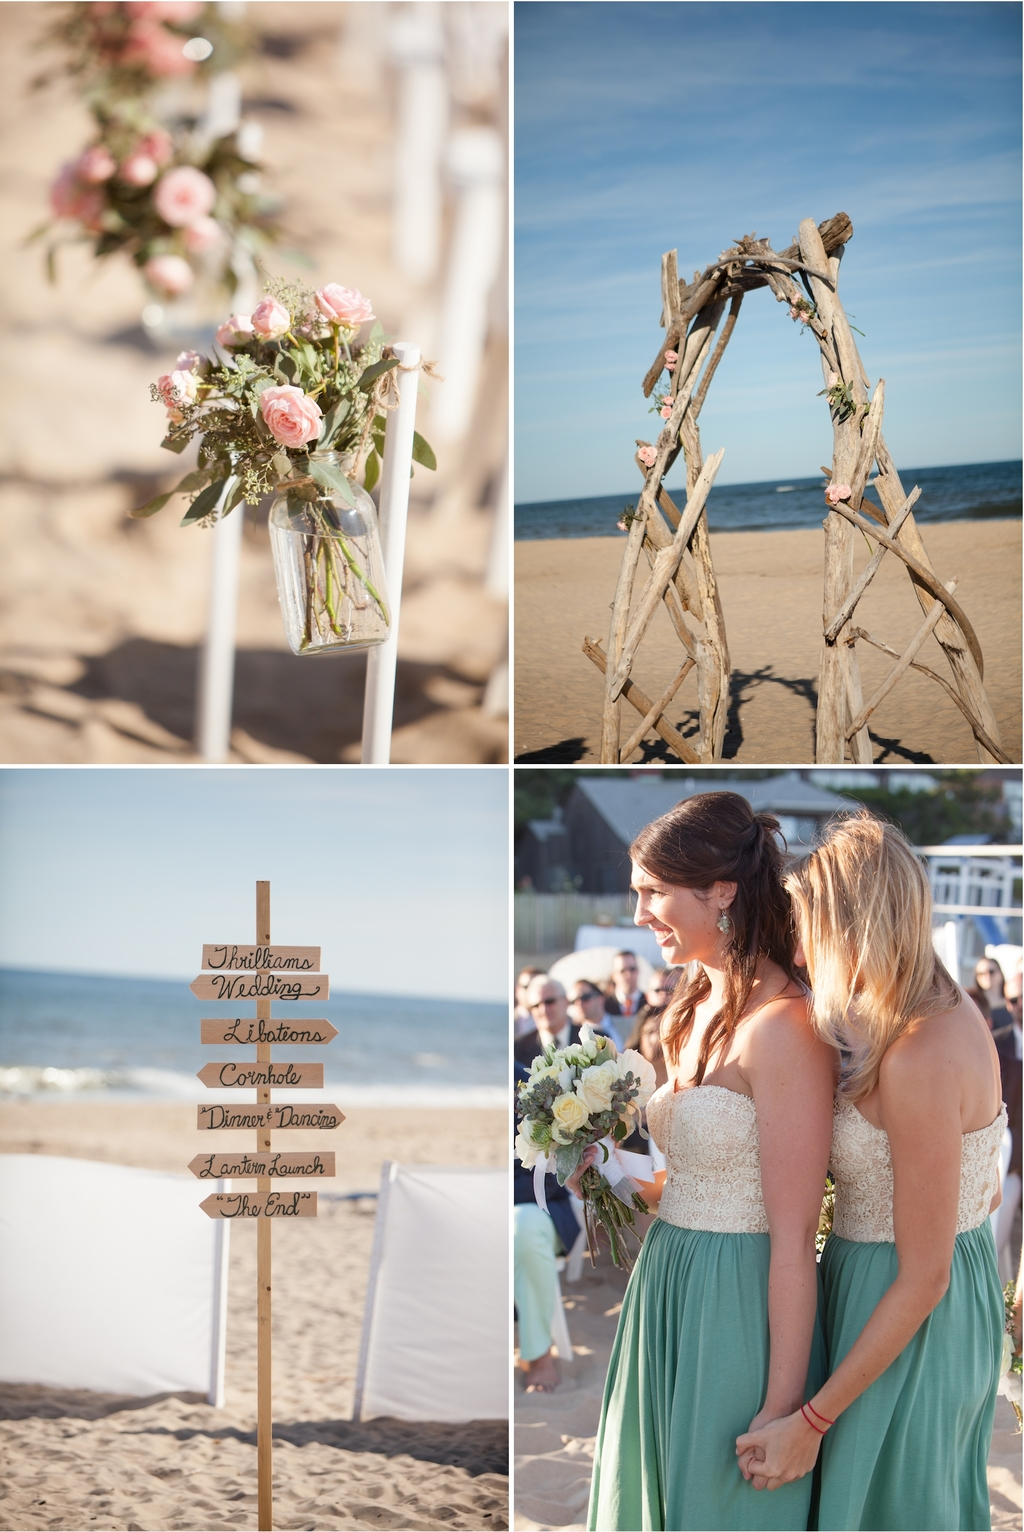 Real-wedding-long-island-throo-williams-photography-by-verdi-ceremony-bridesmaids-flowers-sinage-trellis.full